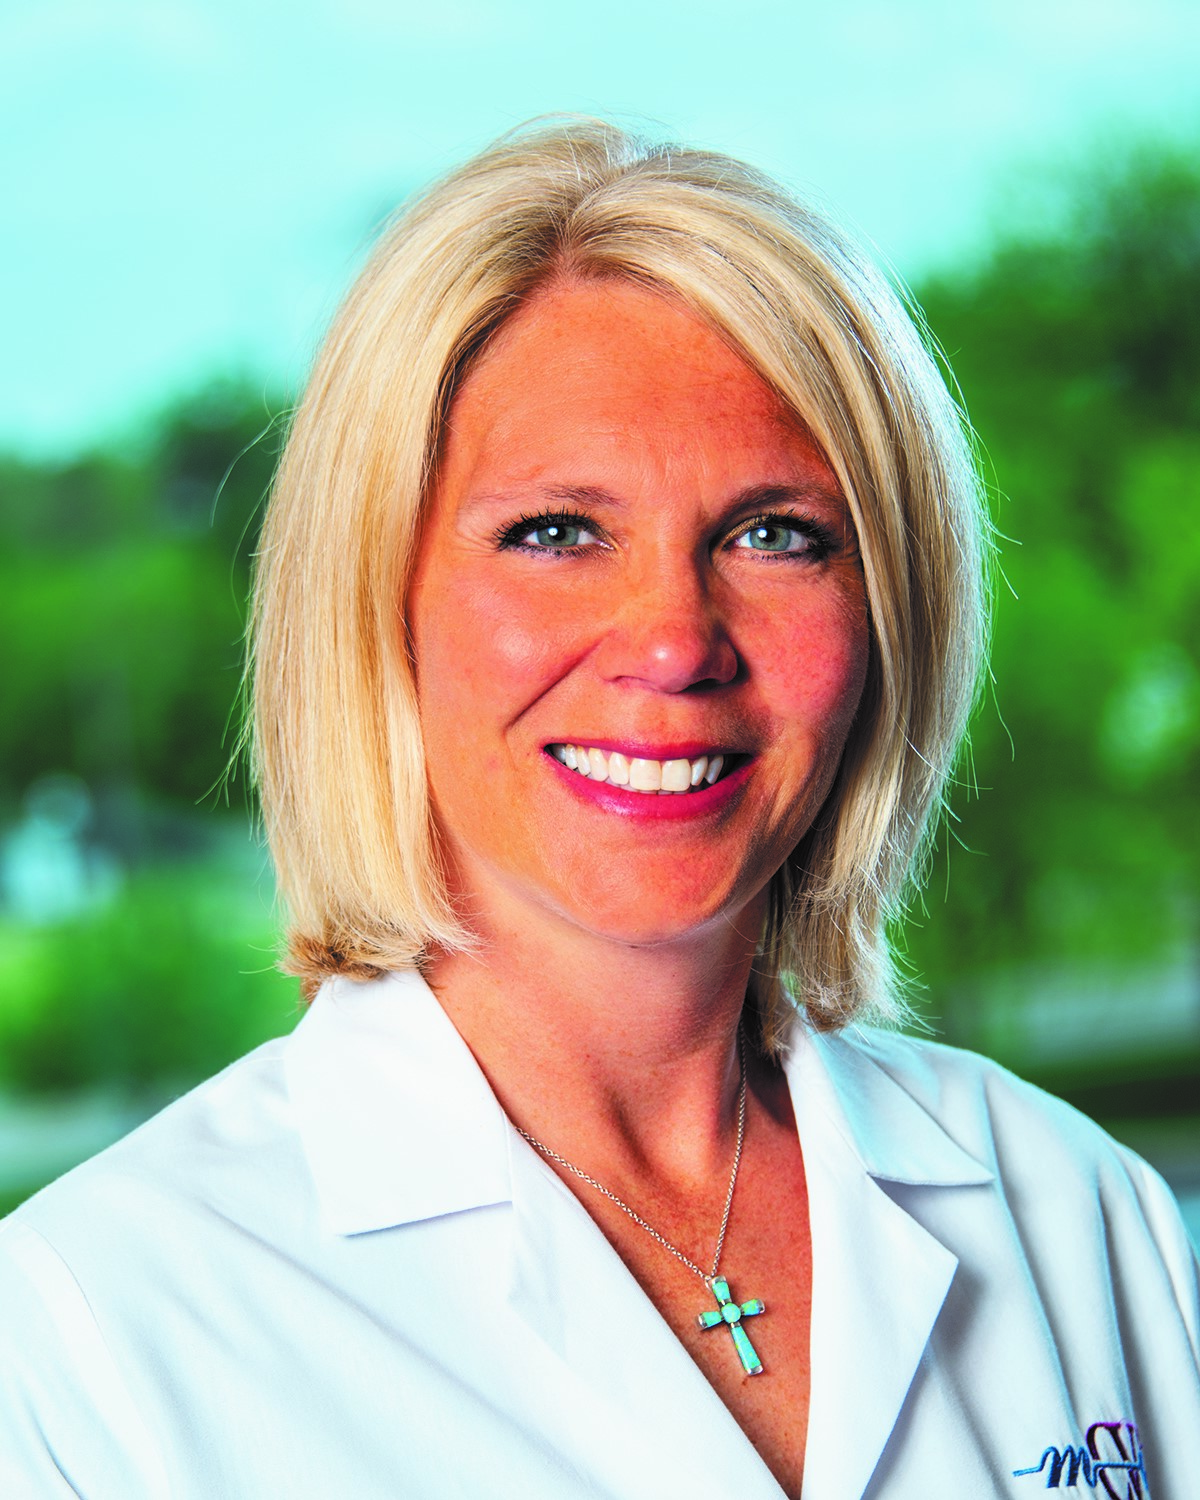 Carrie Reif-Busman, PA-C – An Independent Provider